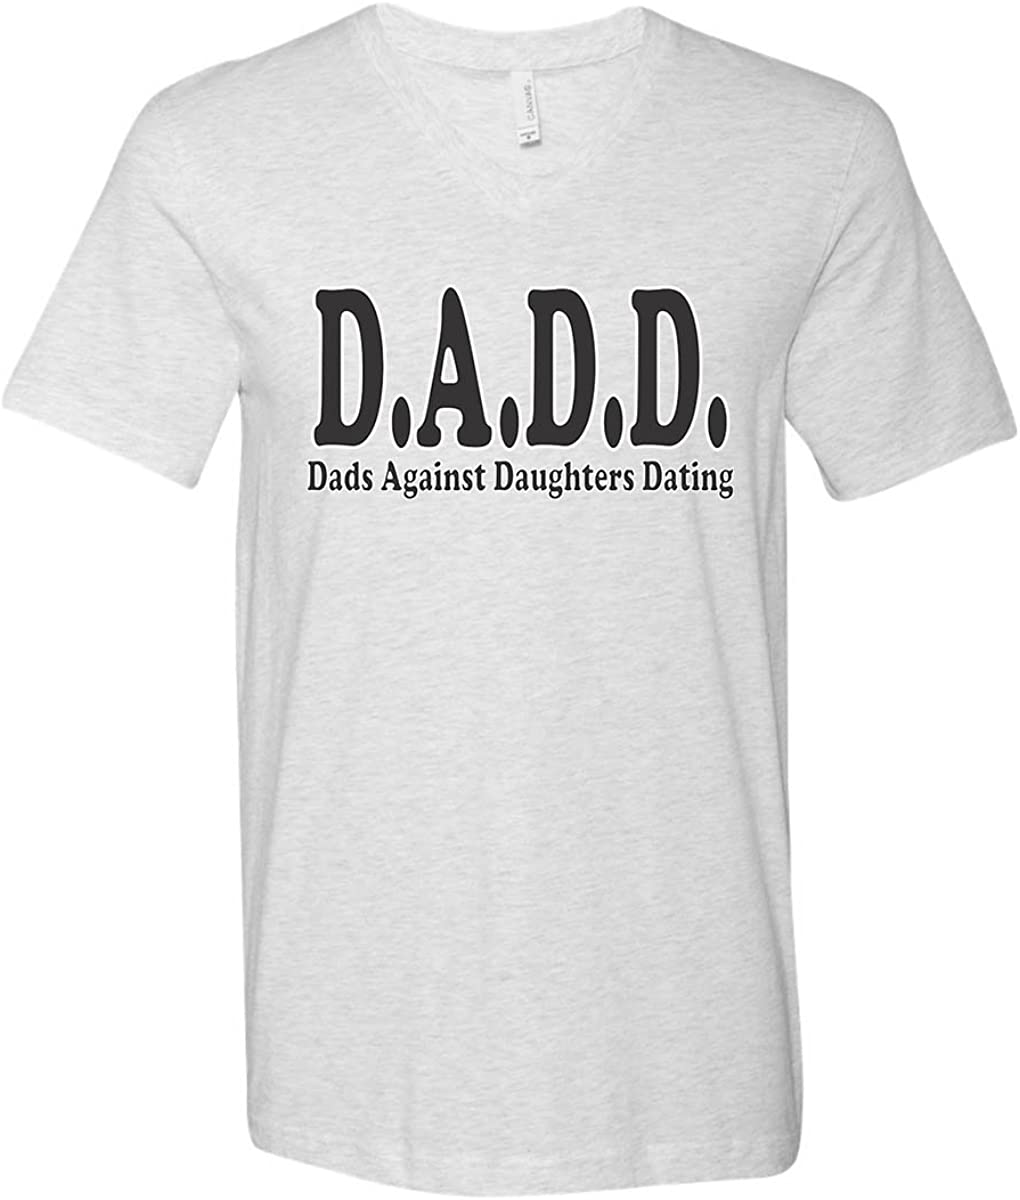 Father Of The Greatest Daughter V-neck T shirt  Father/'s Day Gift